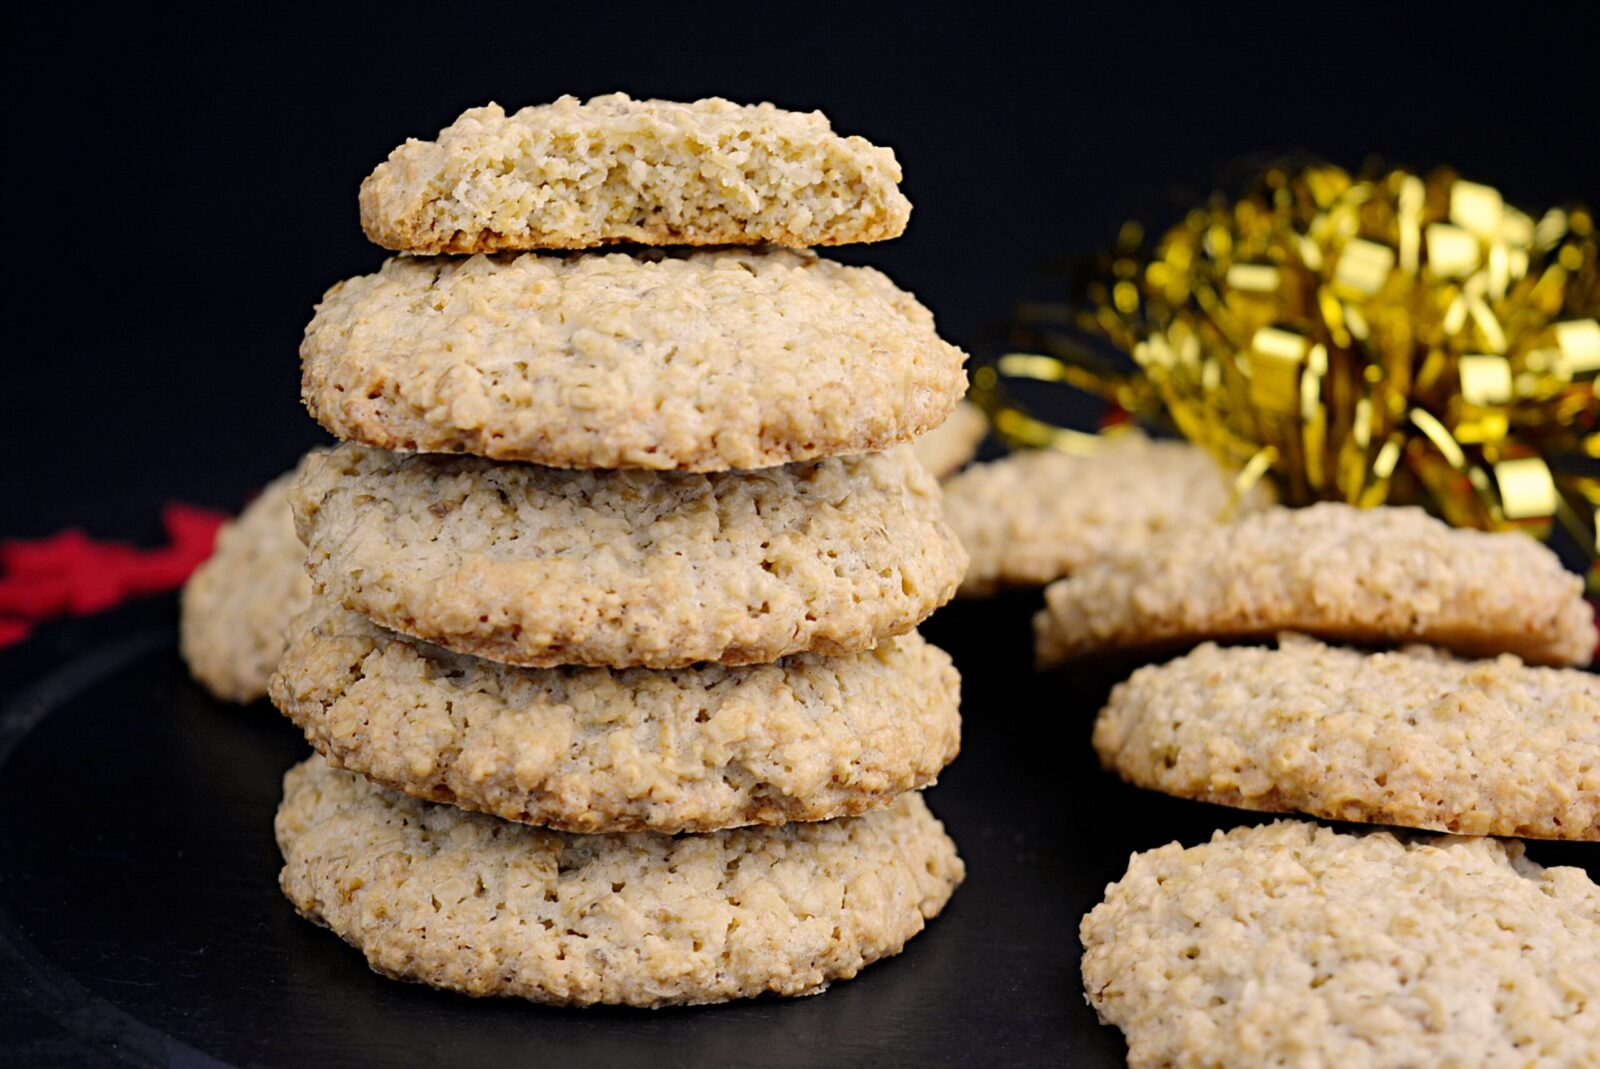 Homemade biscuits with oatmeal